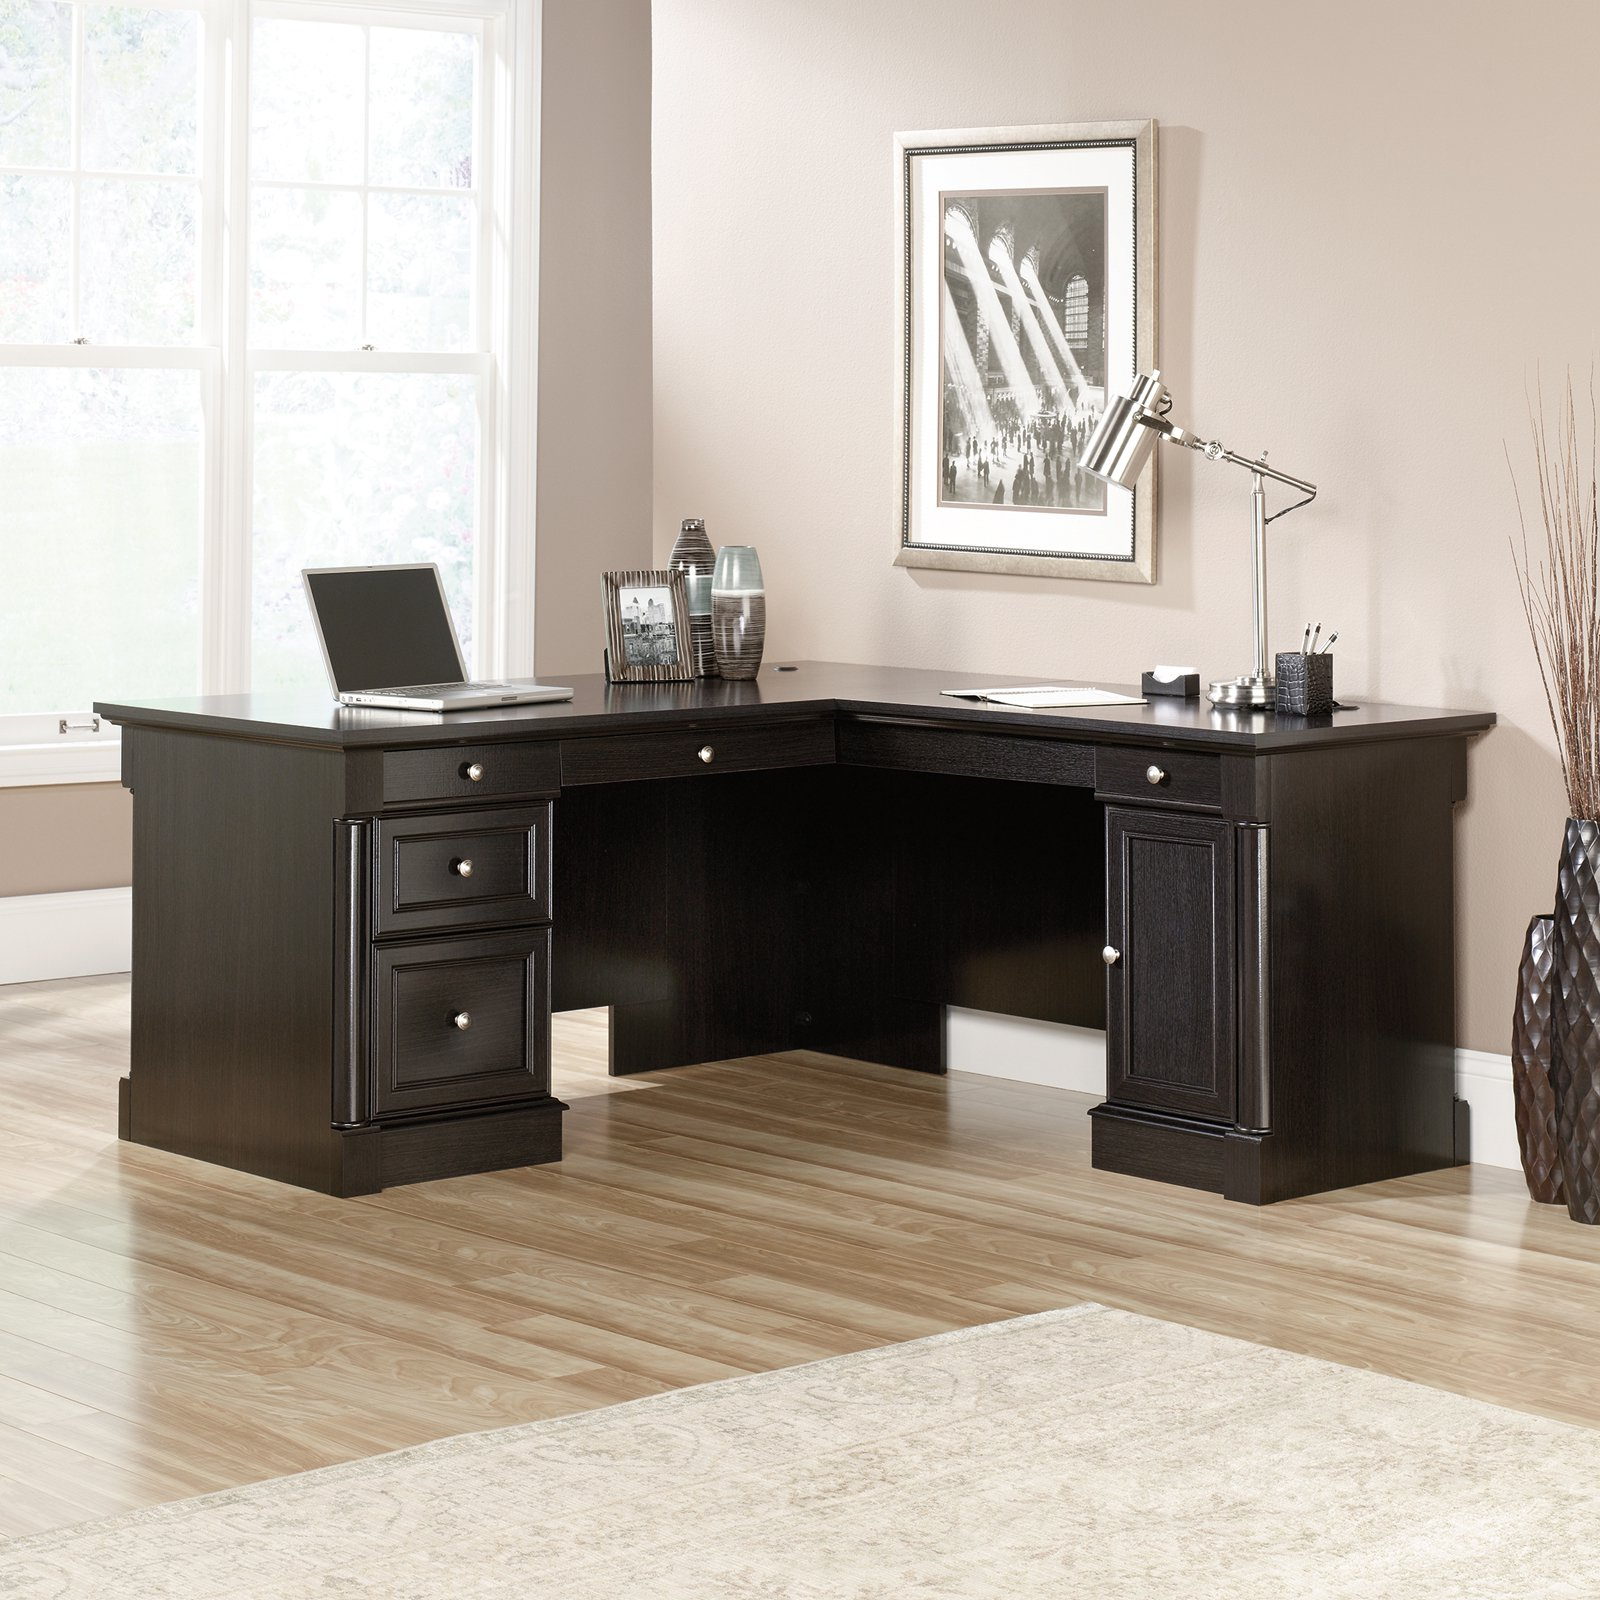 Sauder Palladia L-Shaped Desk - Wind Oak